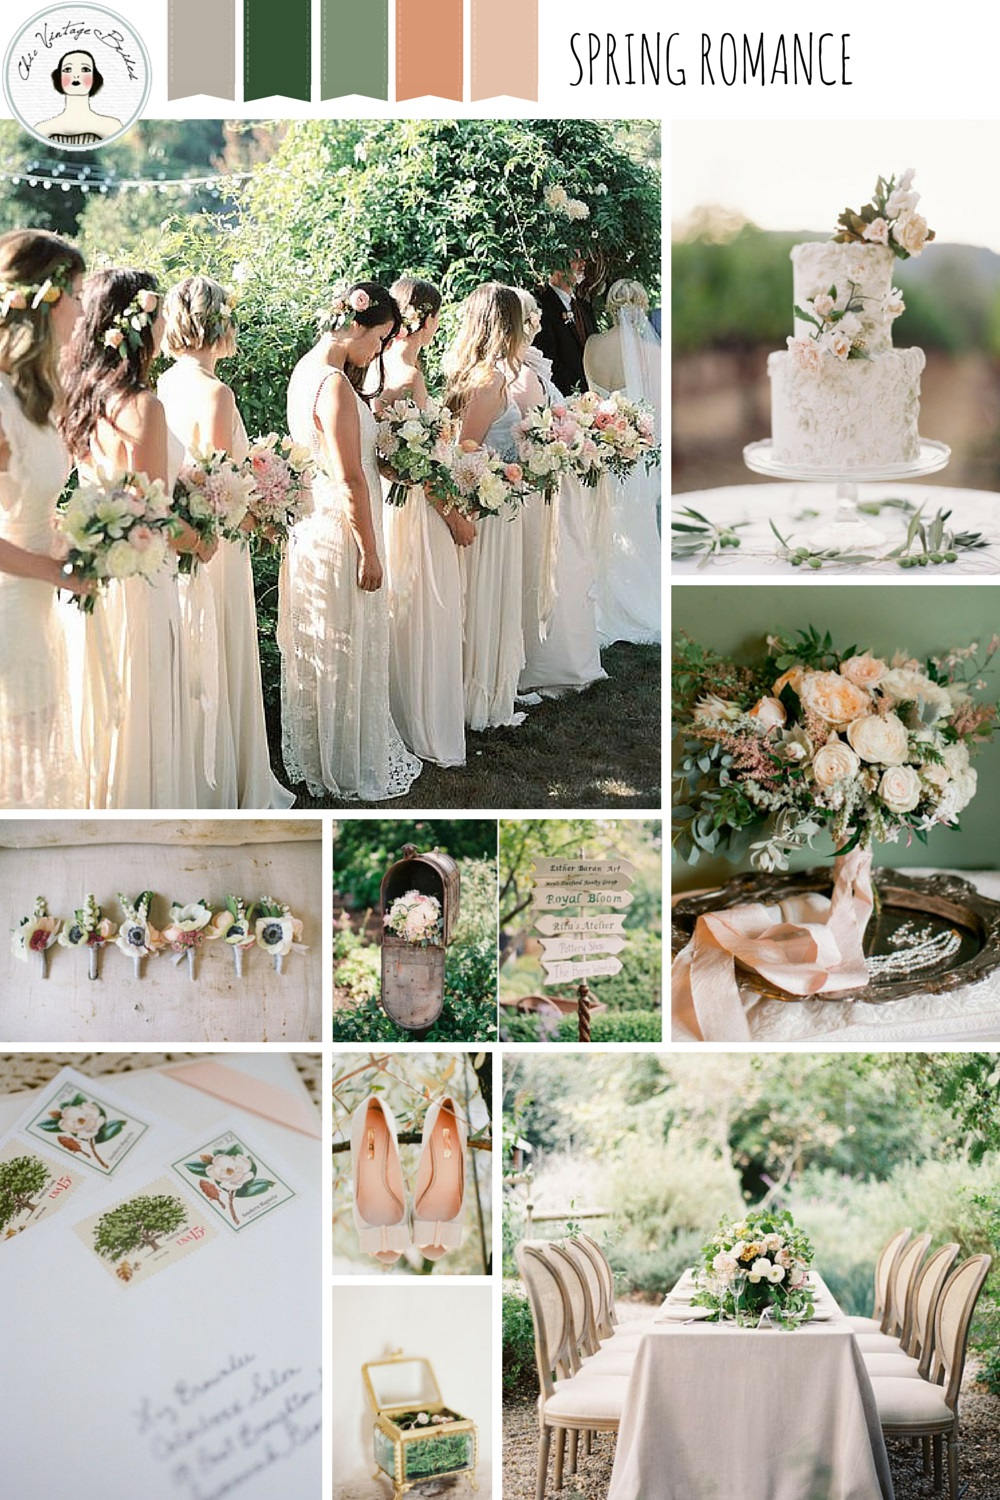 Spring Romance – Garden Wedding Inspiration in Pretty Pastel Shades of Peach, Blush & Green